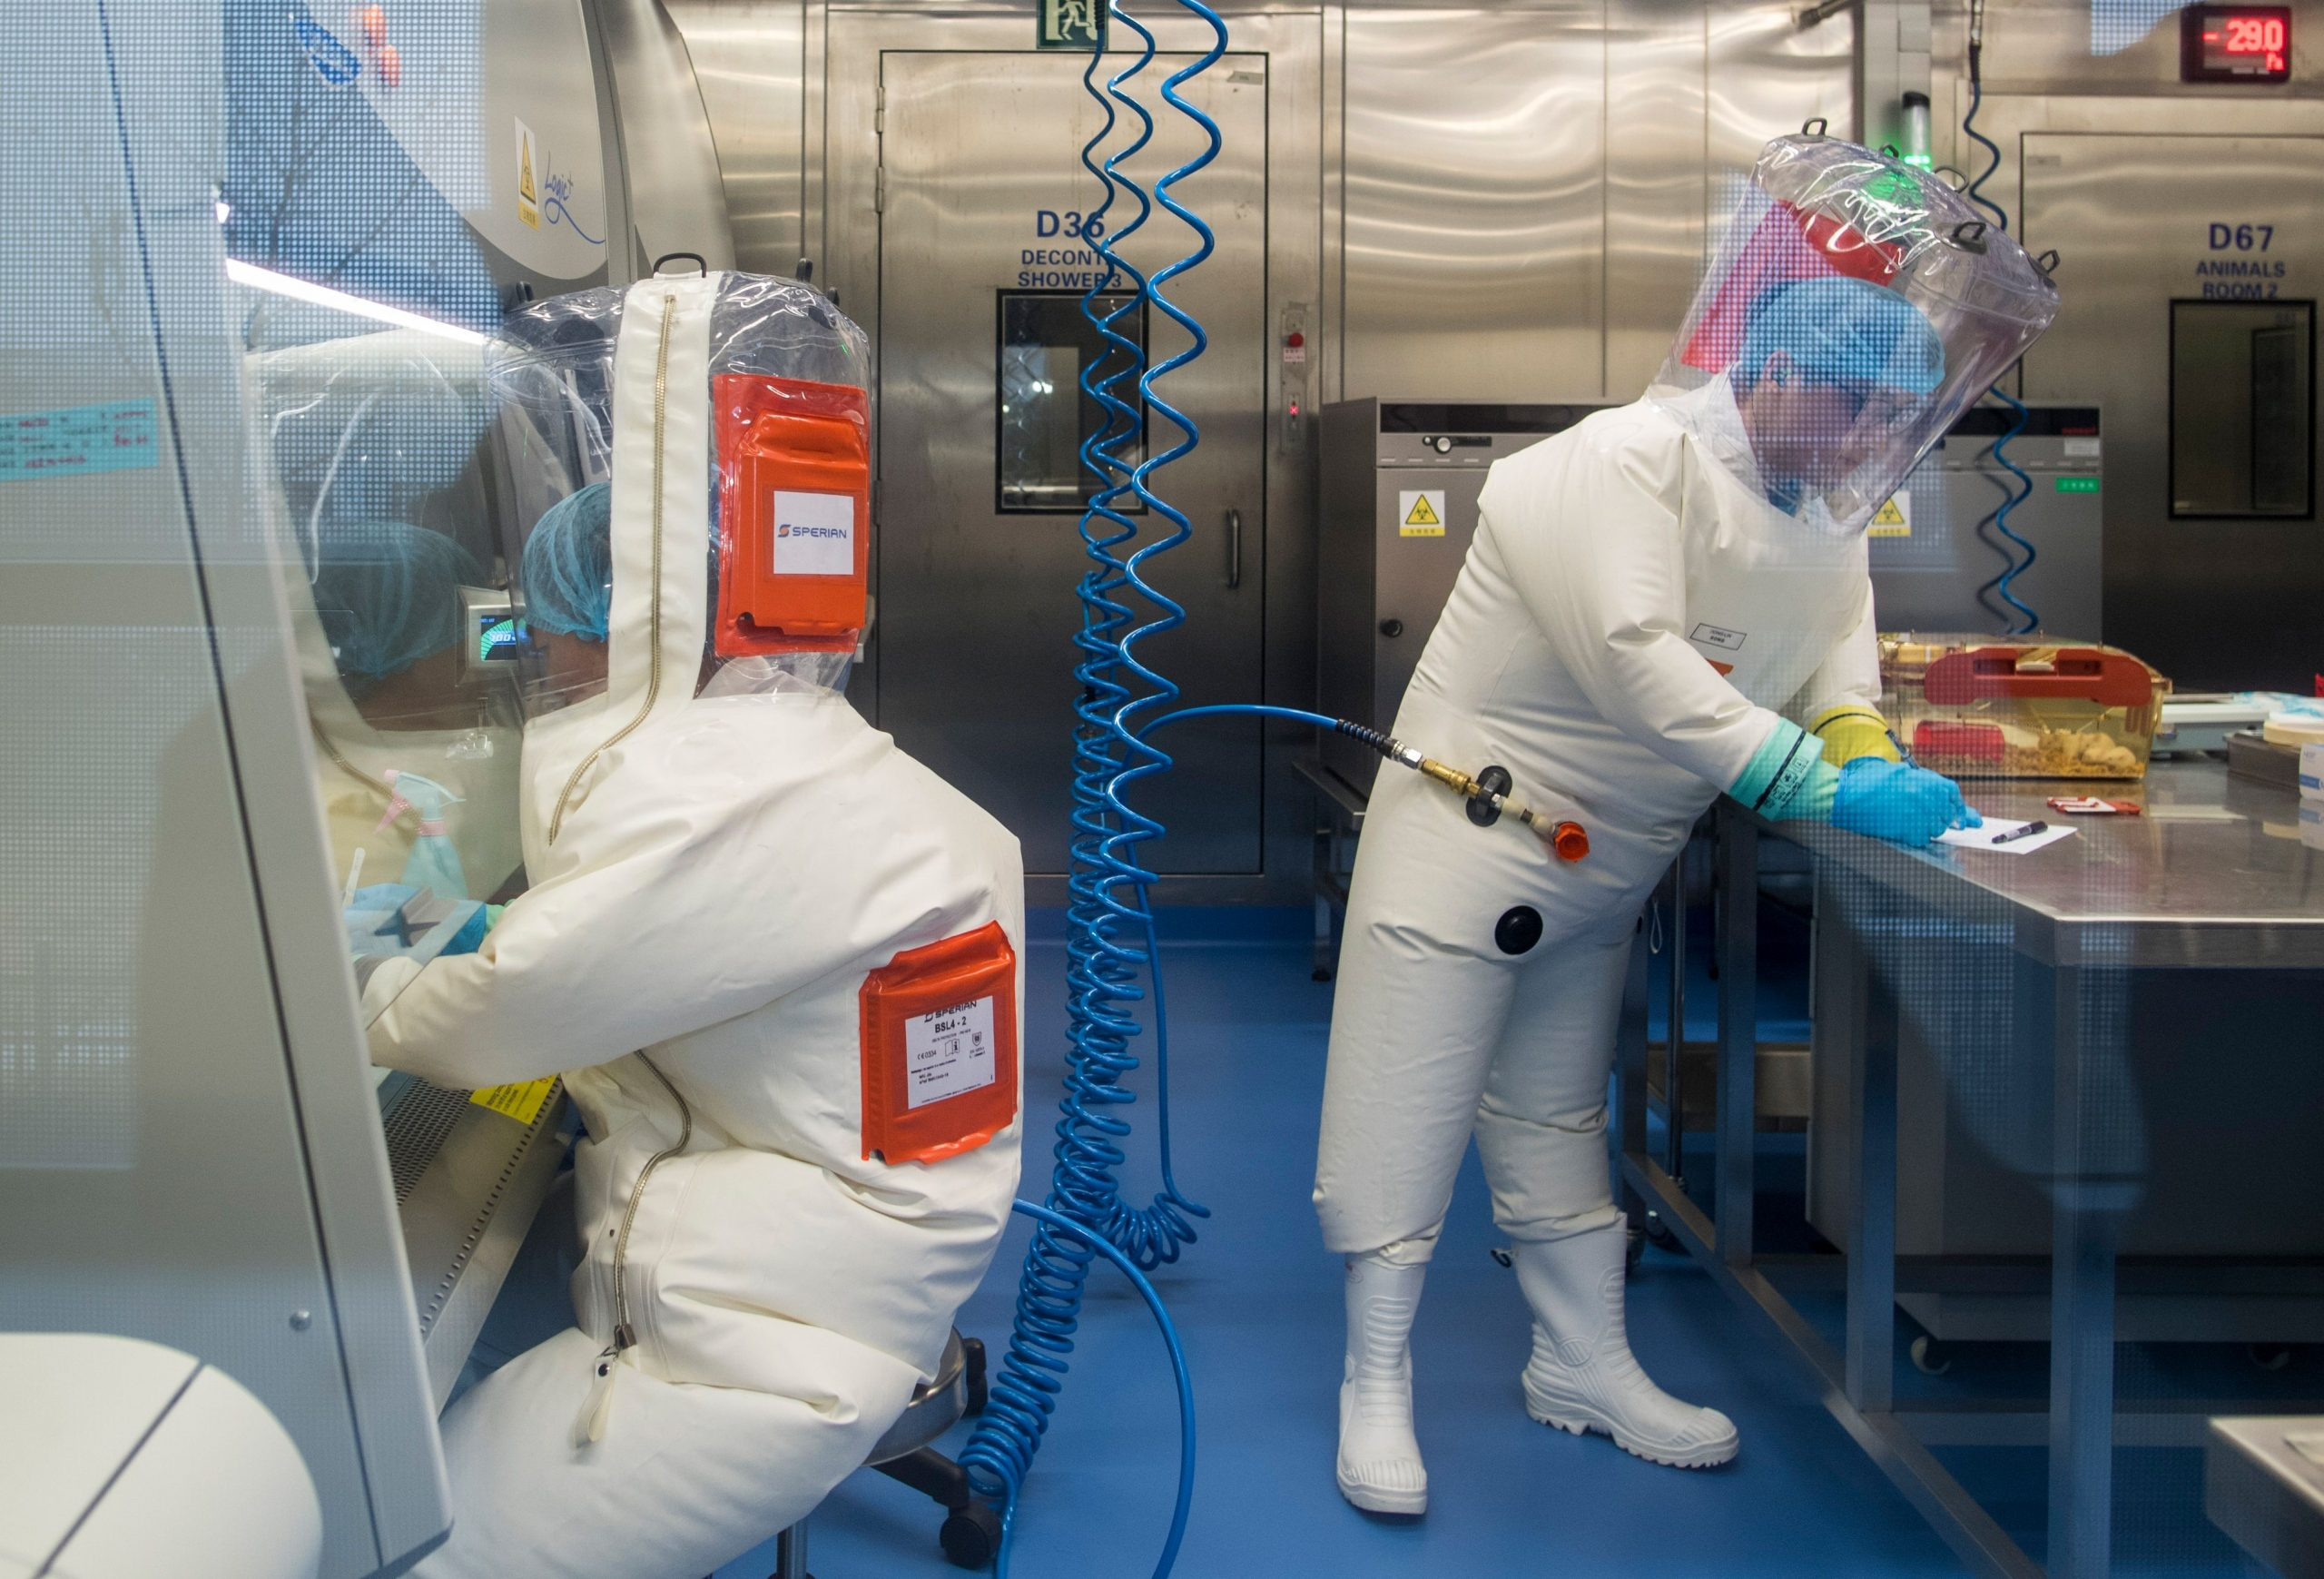 COVID-19 patient zero may have been Wuhan lab worker: WHO